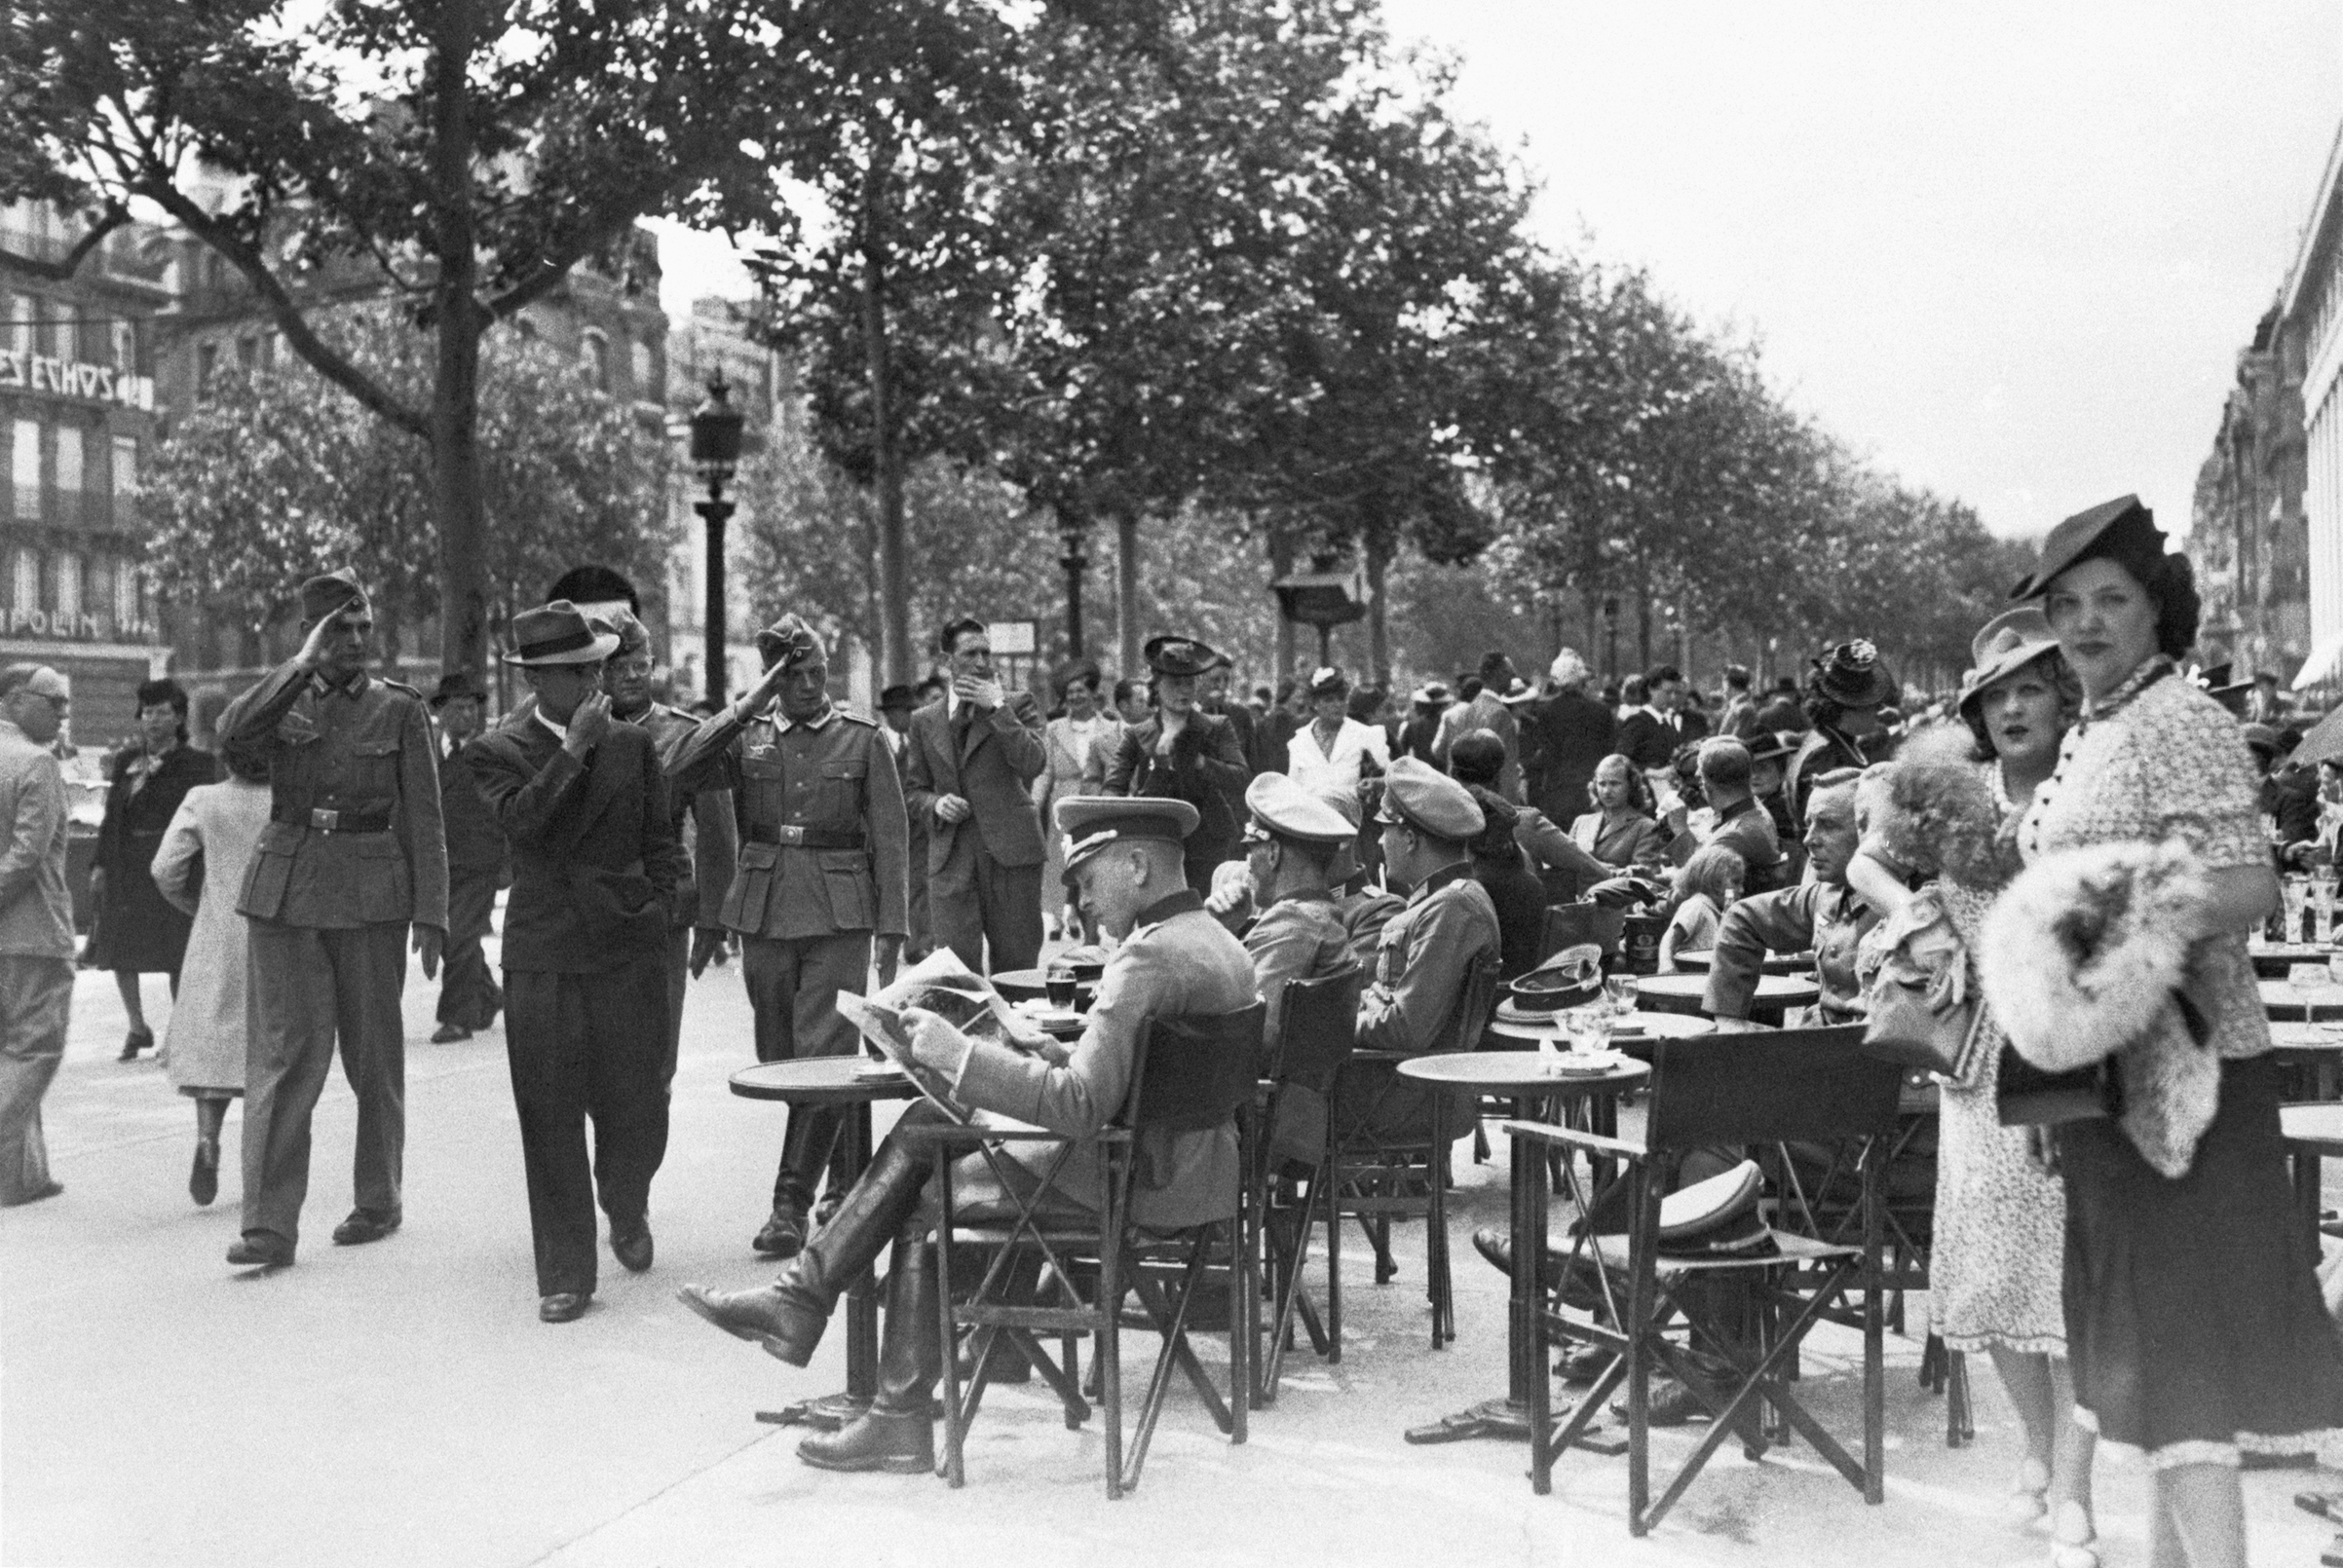 Parisians on the first Bastille Day under Nazi occupation, in 1940.